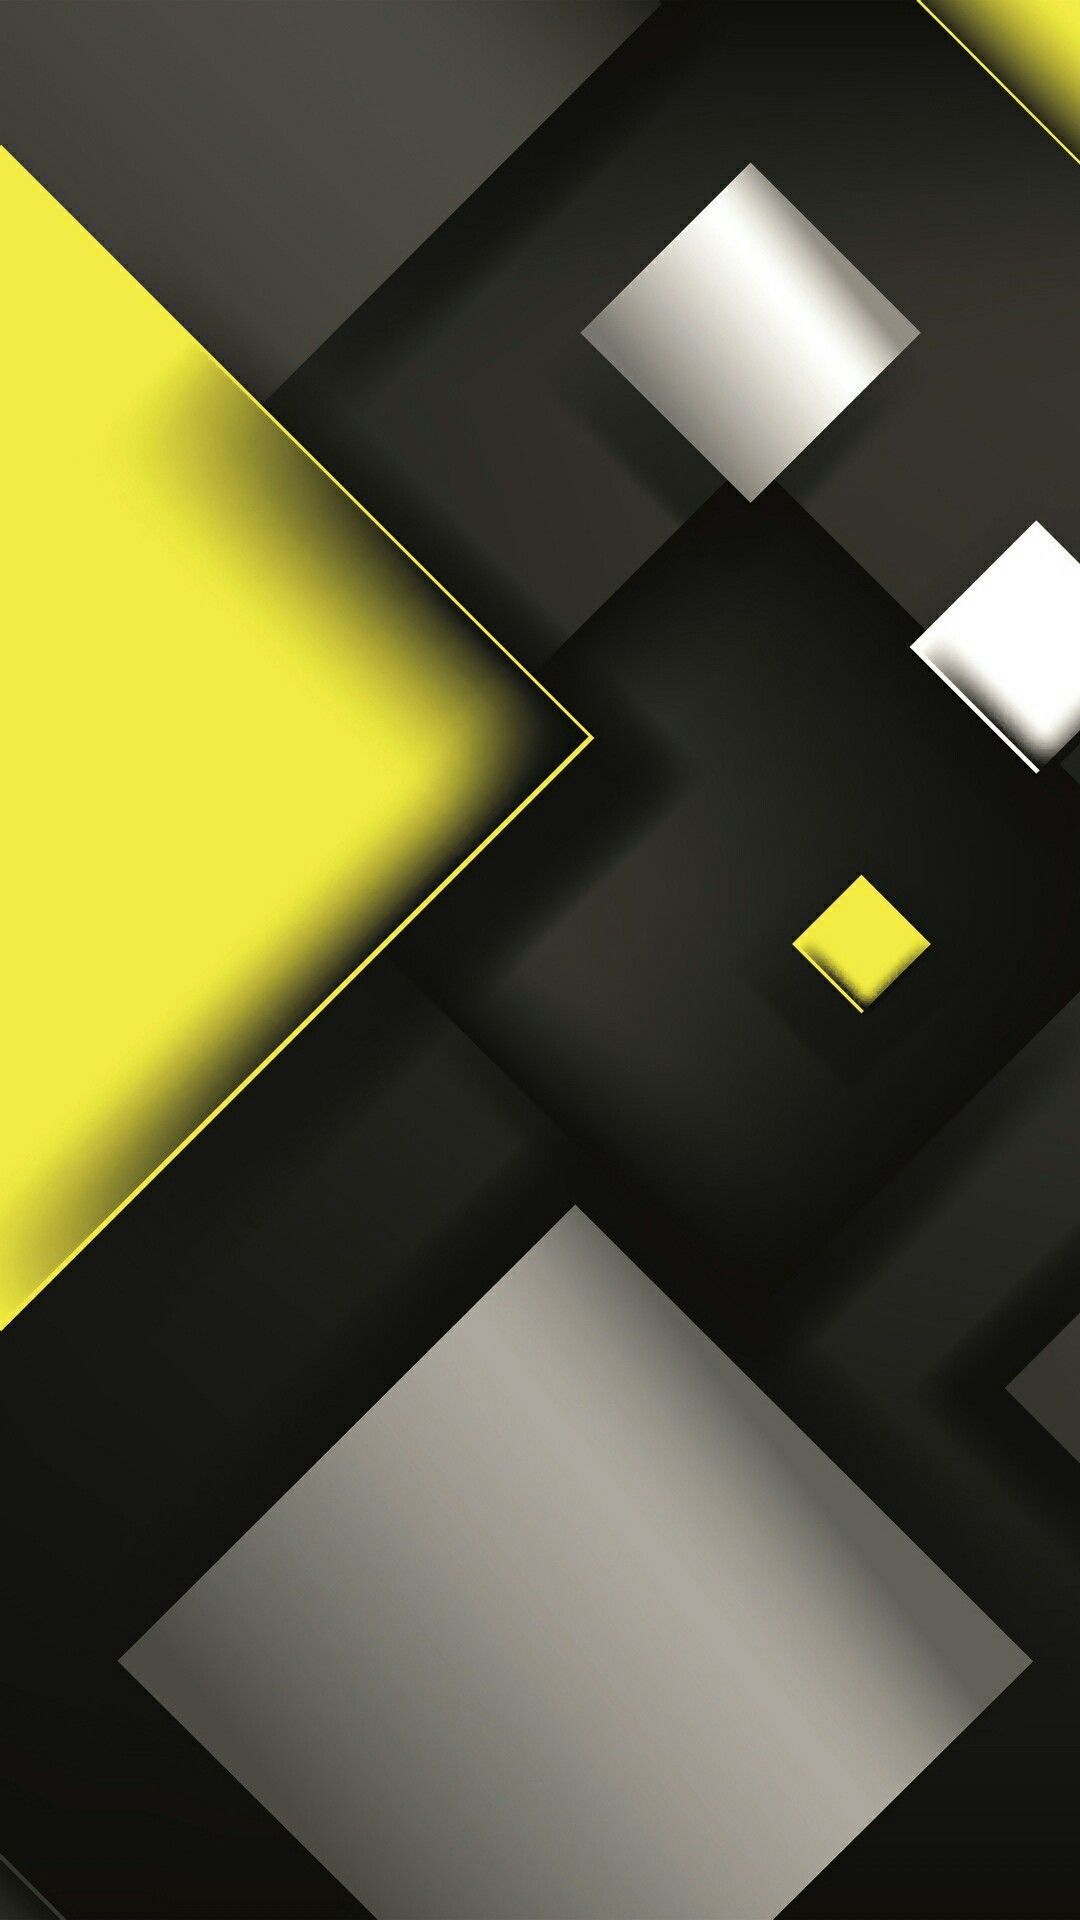 Yellow And Black Abstract Wallpaper 100 Iphone In 2021 Abstract Wallpaper Android Wallpaper Phone Wallpaper Images